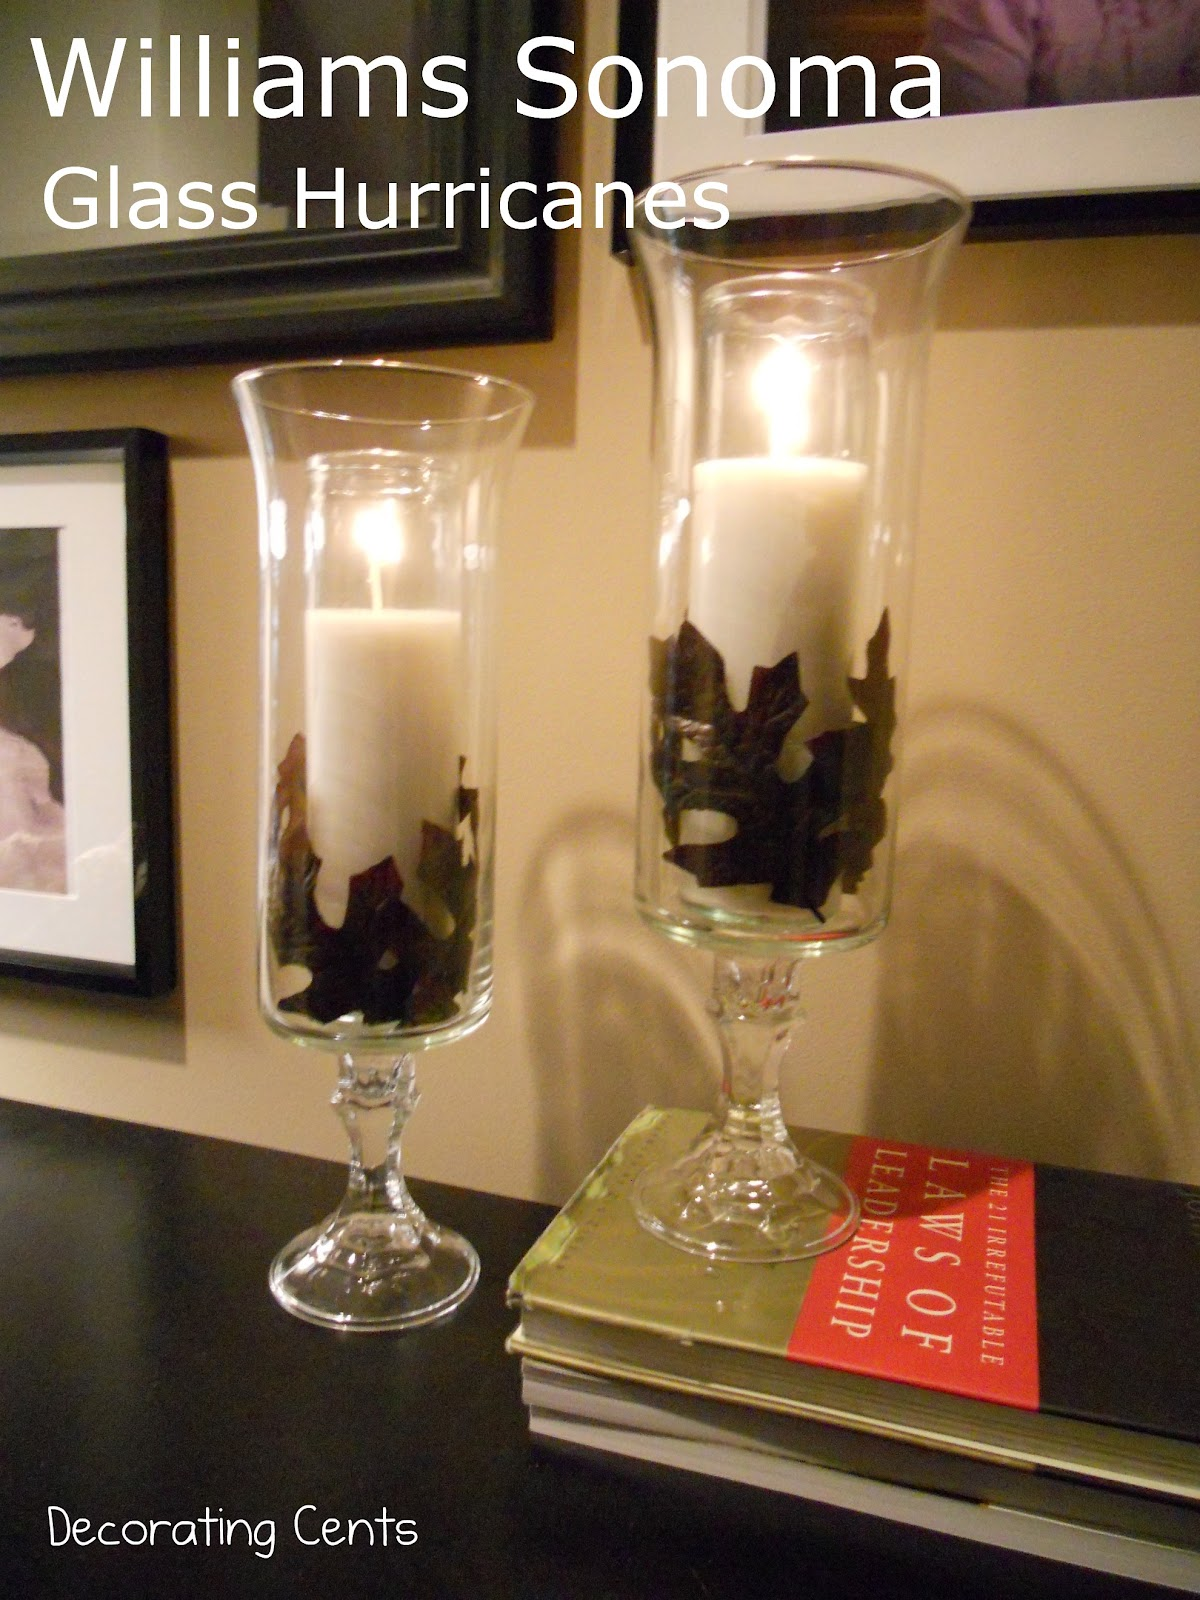 Decorating Cents: Williams Sonoma Inspired Fall Glass Hurricanes